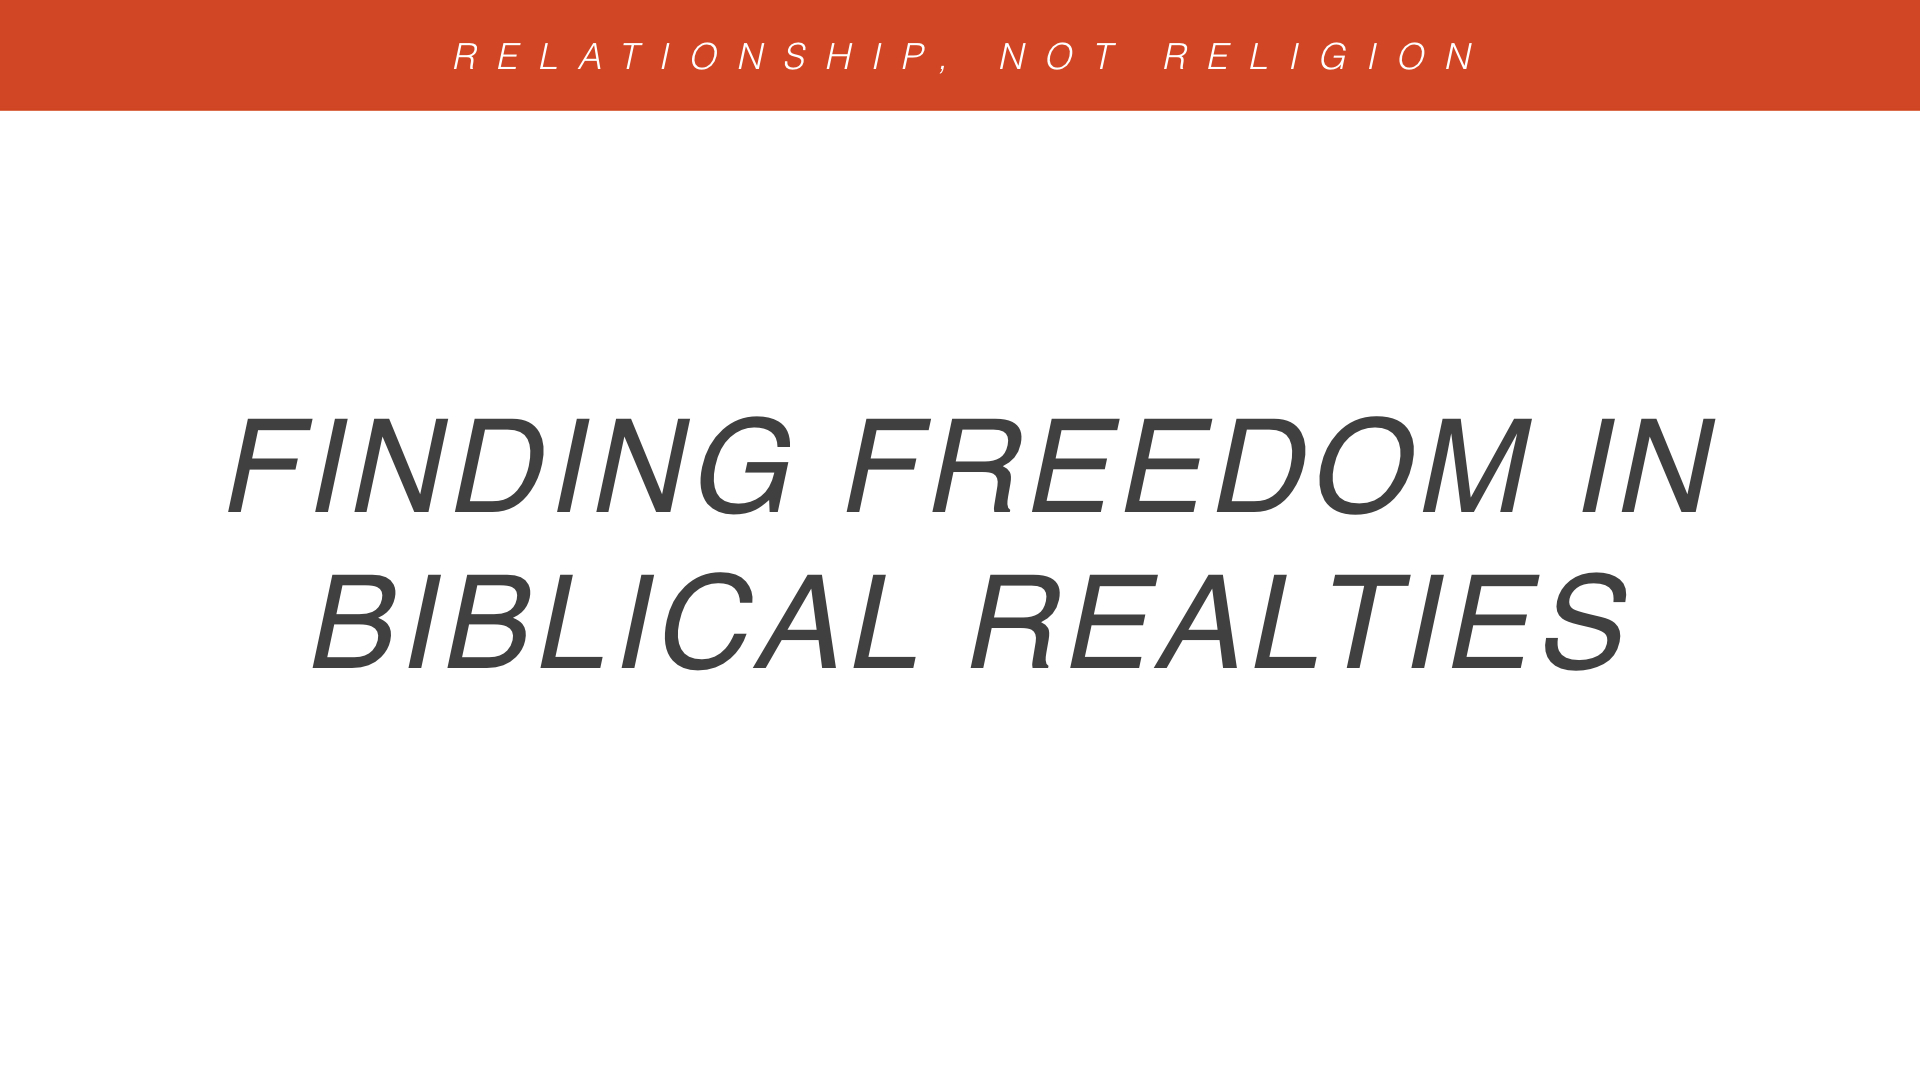 Real Christianity - Week 4 - Relationship, Not Religion copy.016.jpeg